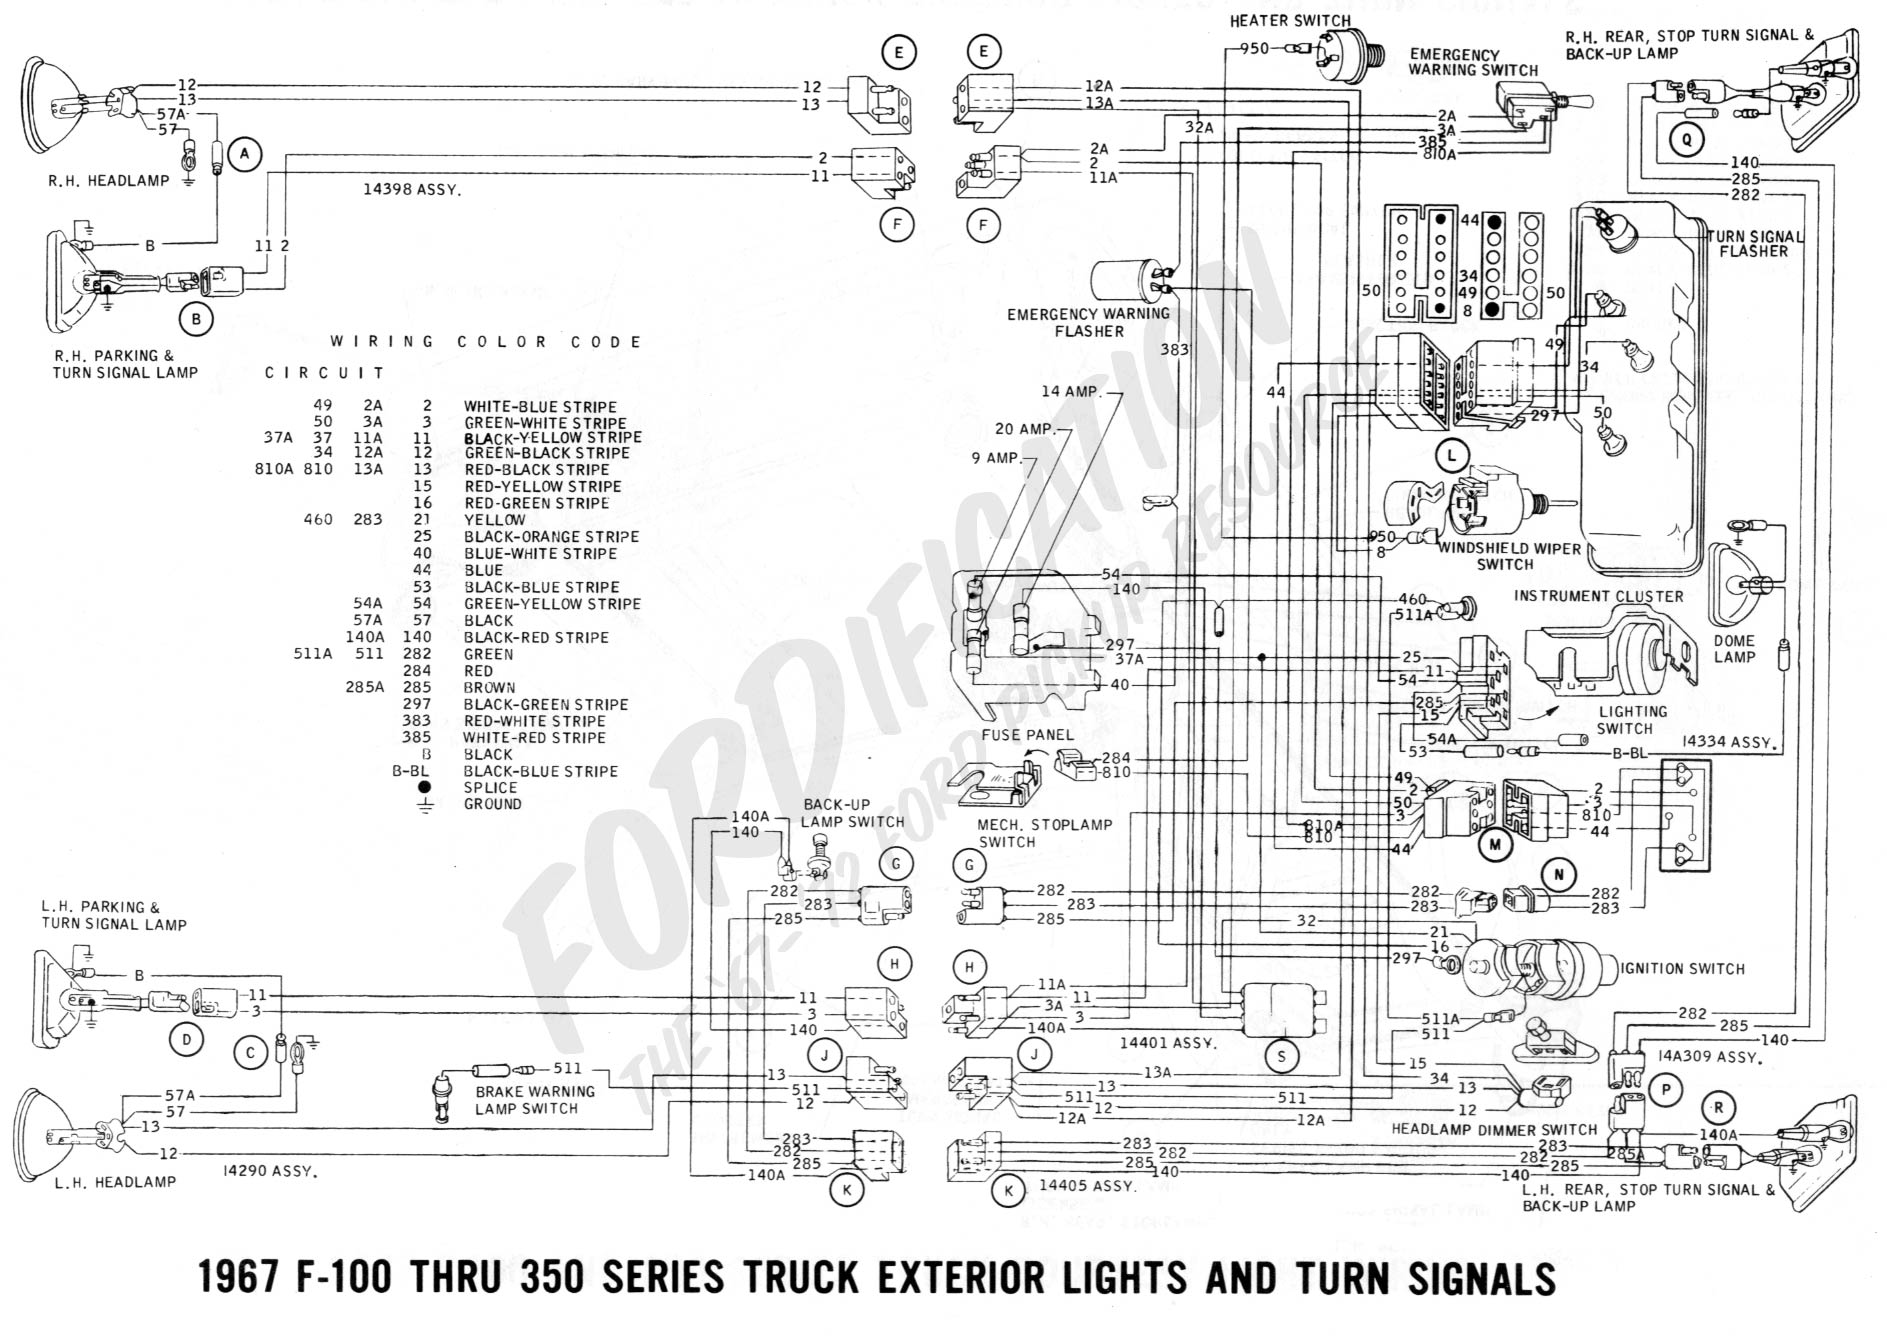 2002 f150 dash wiring schematic 20 7 stromoeko de \u20222002 ford f450 dash wiring diagram wiring diagram blog data rh 16 5 4 tefolia de 1995 f150 wiring diagram f150 electrical schematics